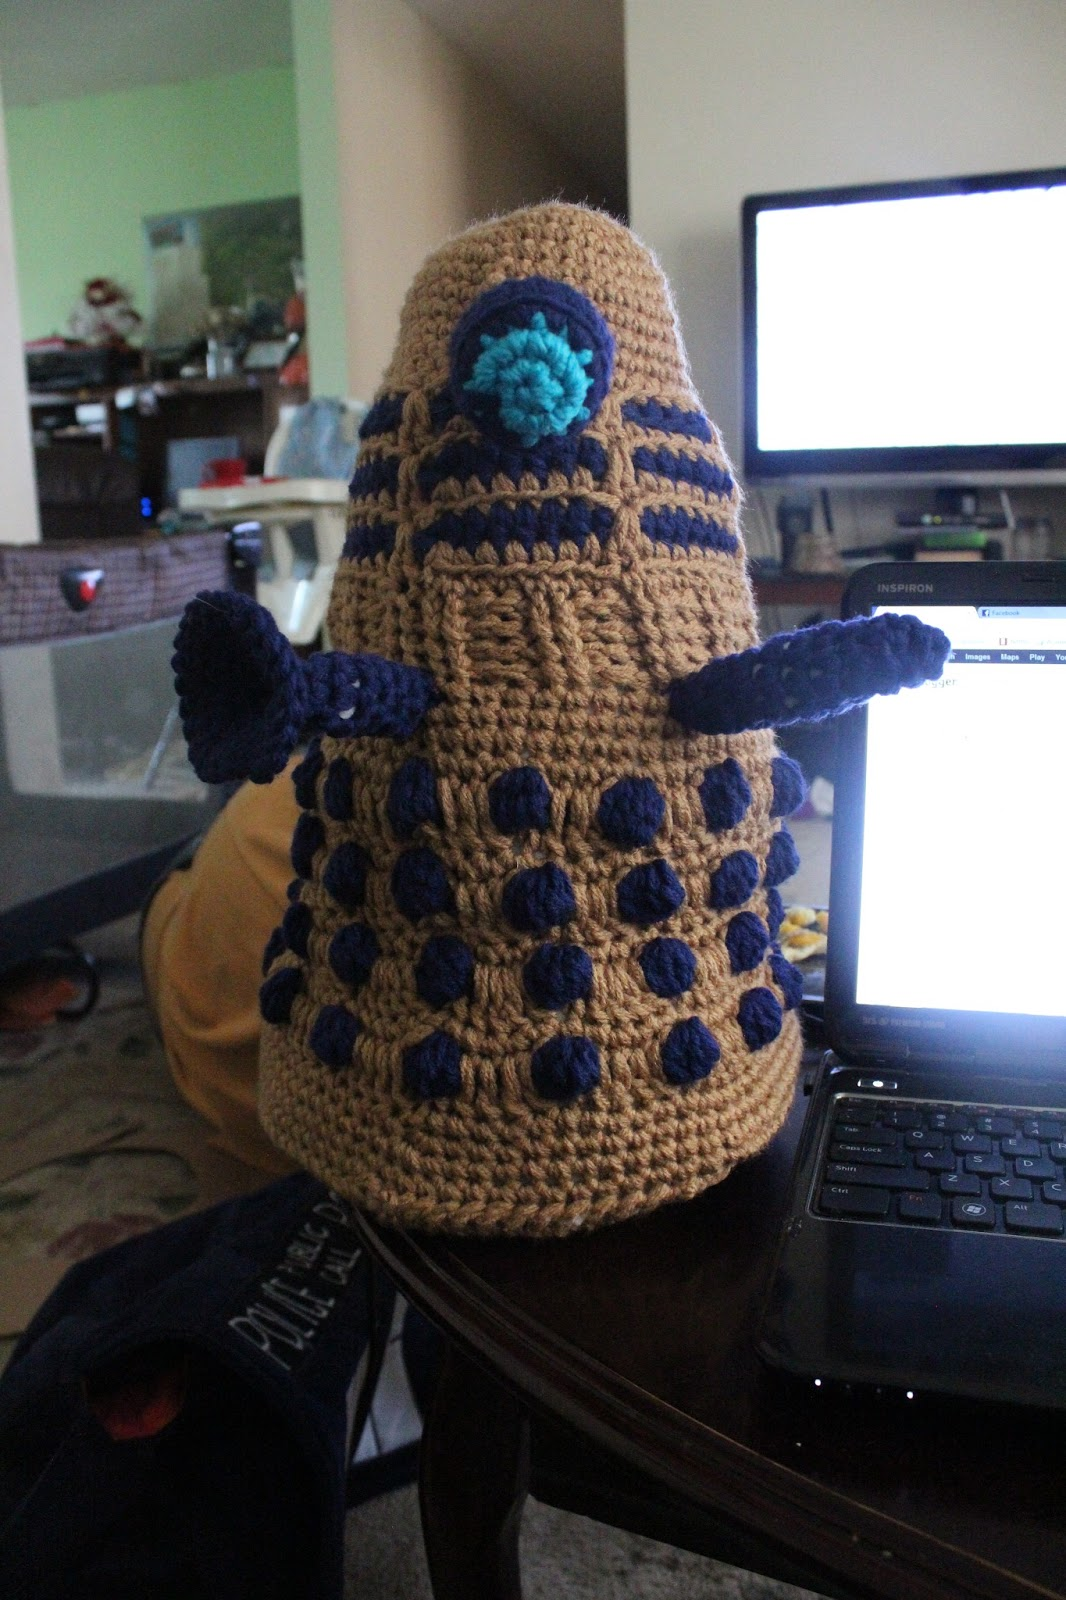 StormFly Crafts: Crochet Doctor Who Inspired \